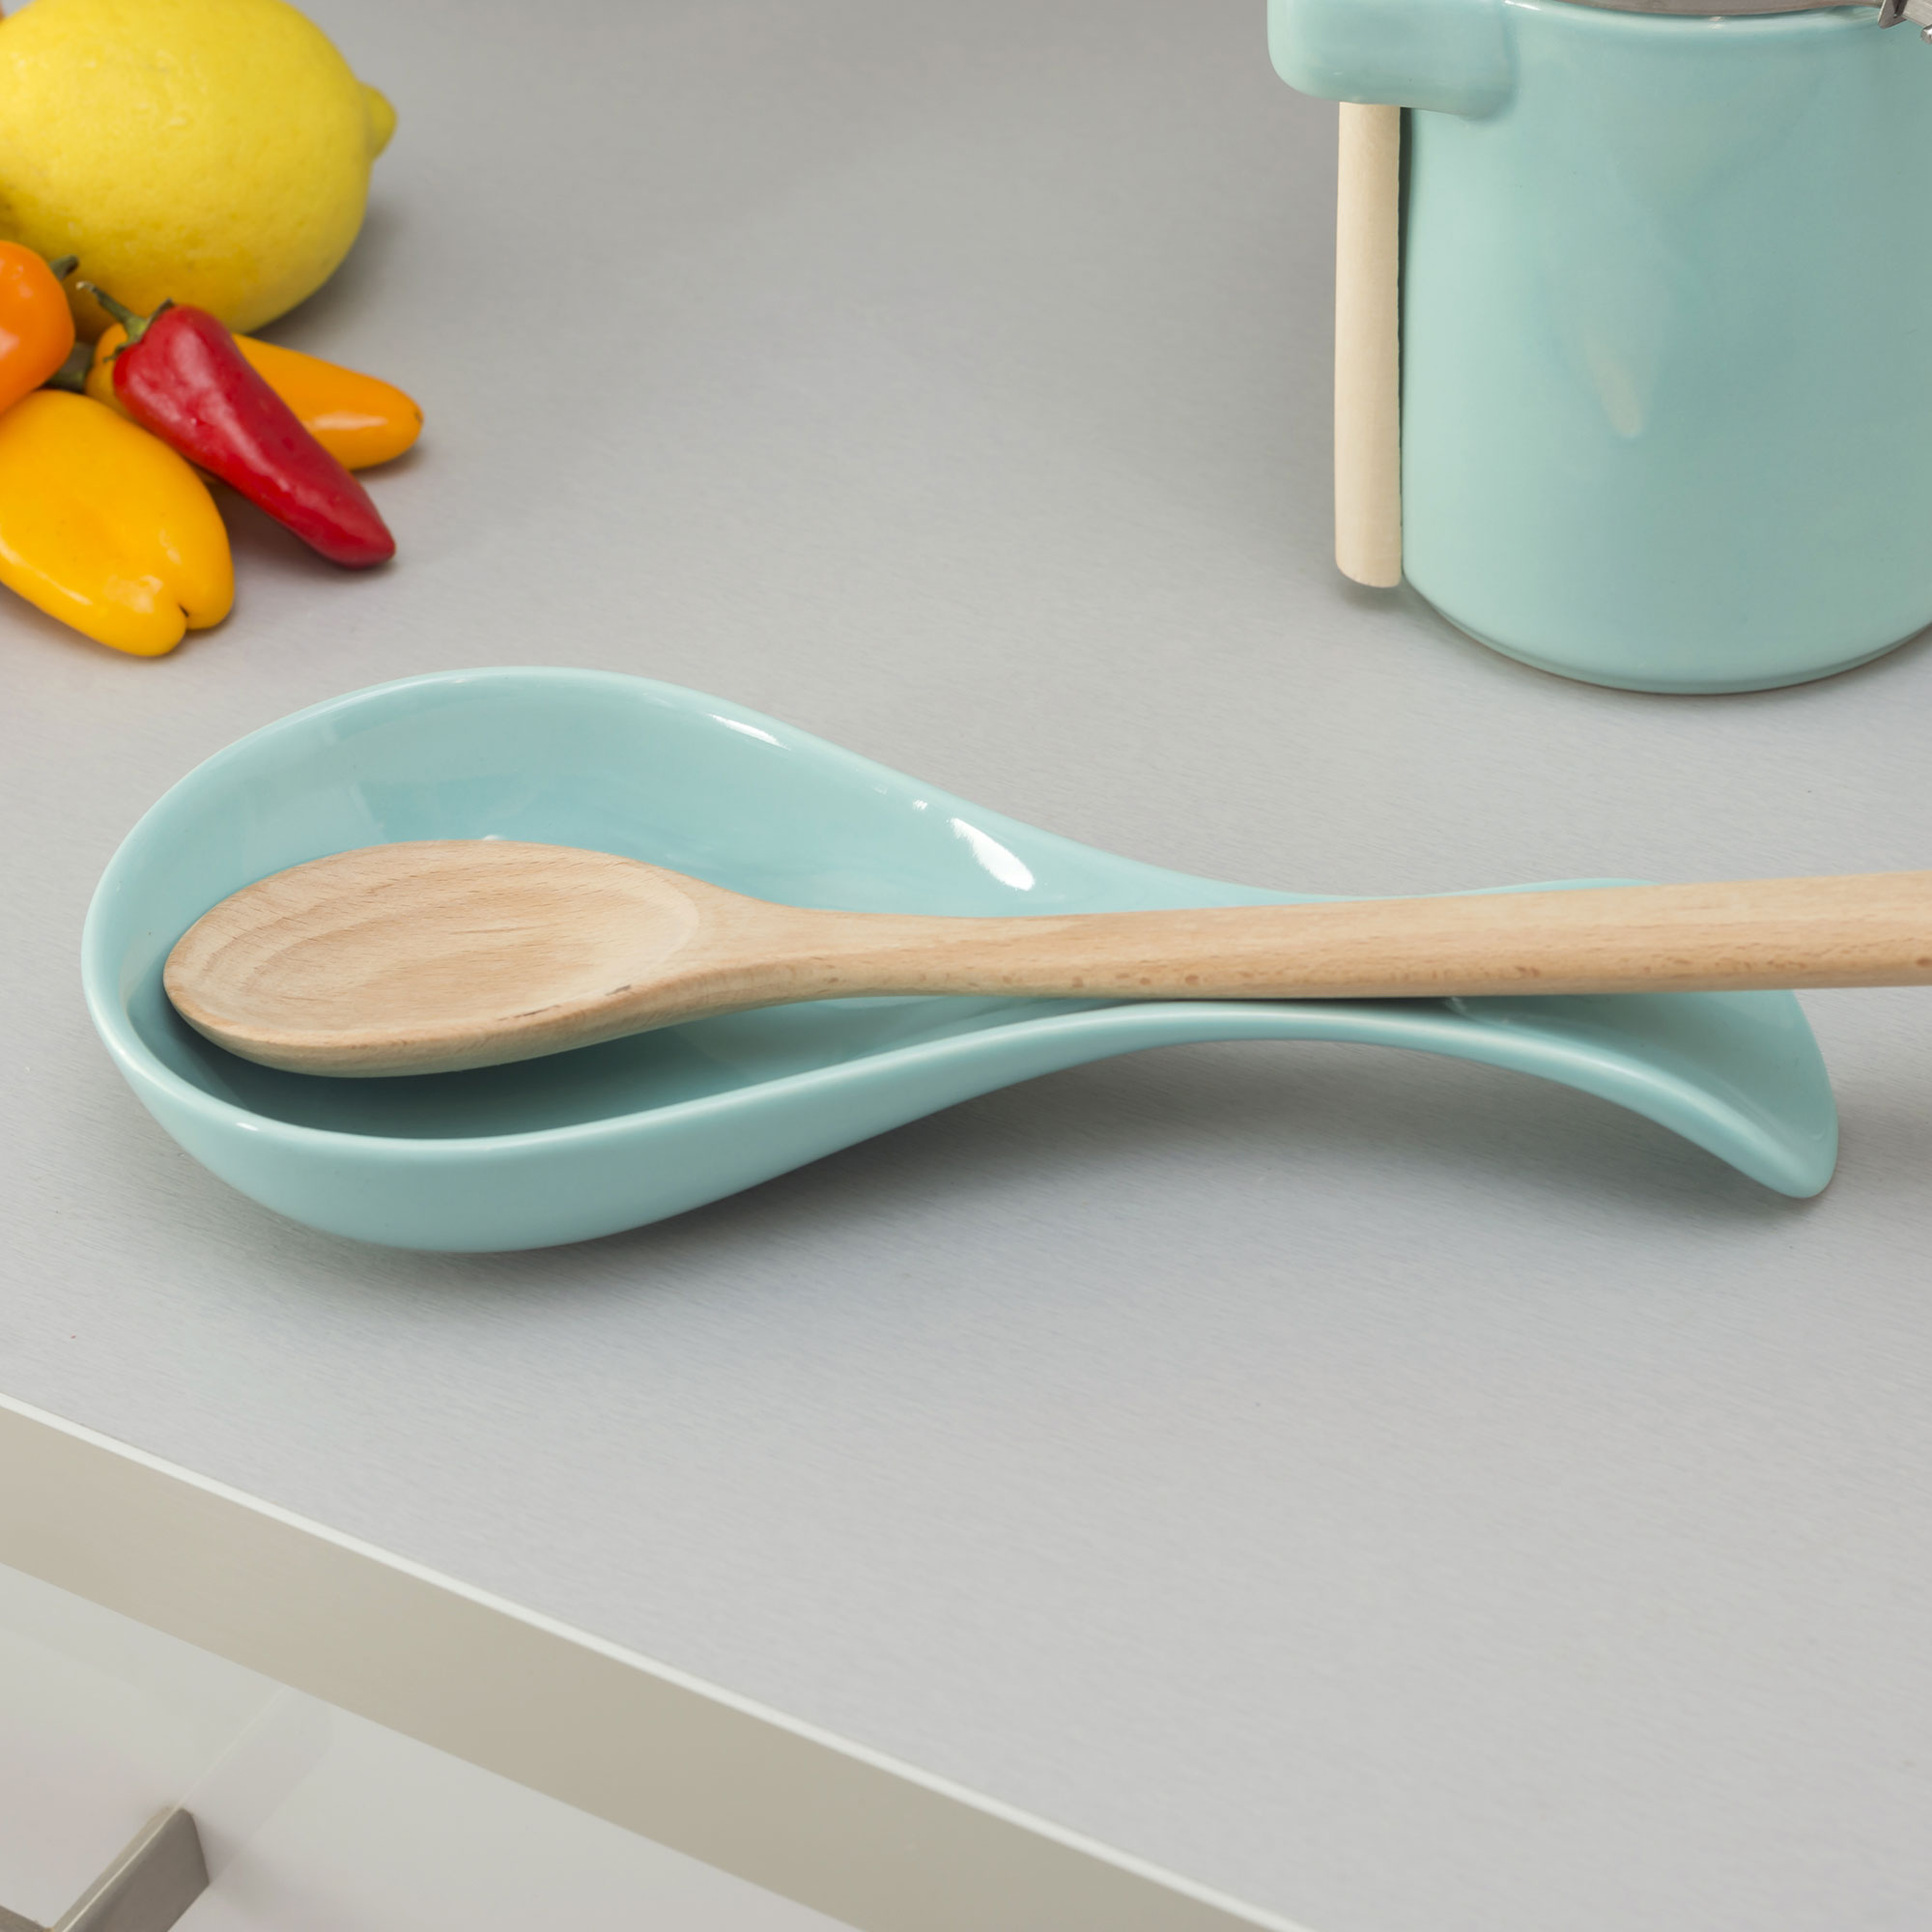 Home Basics Ceramic Hot Cooking Utensil Holder And Kitchen Spoon Rest, Turquoise